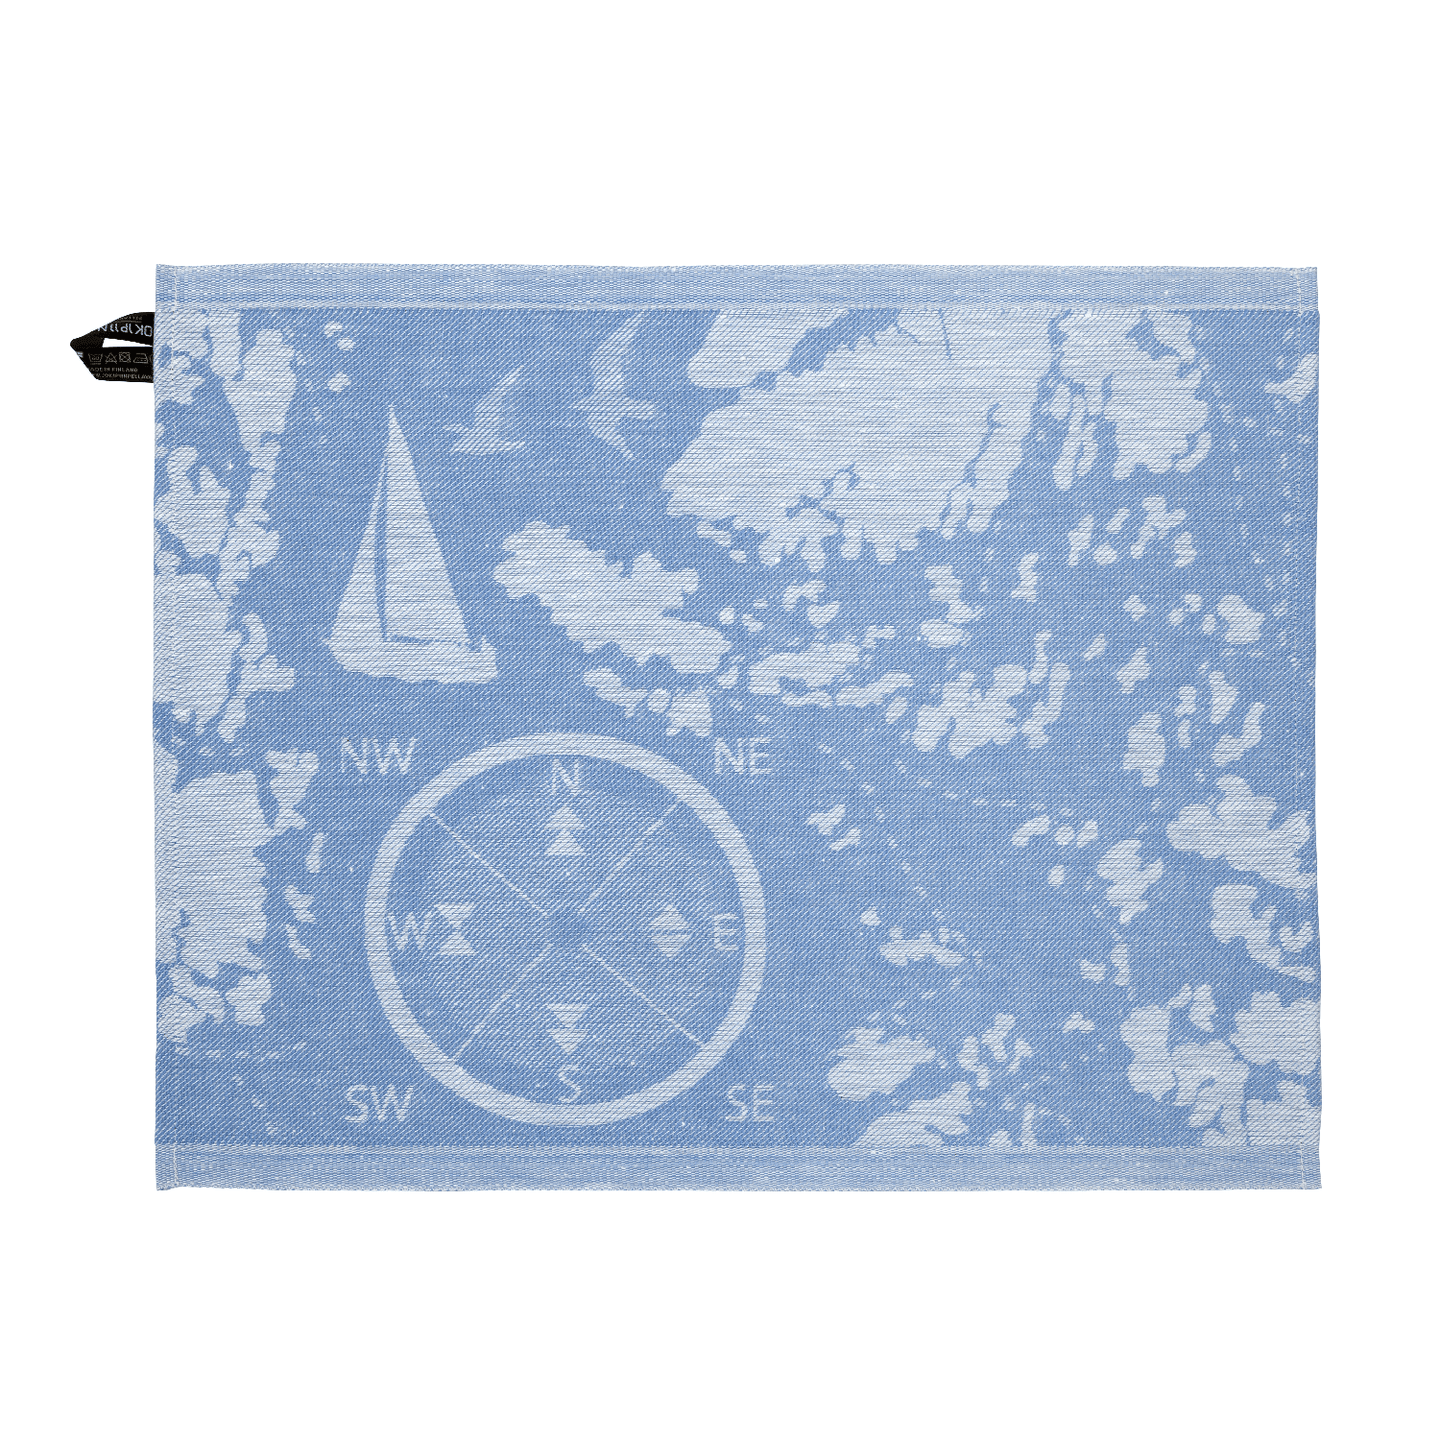 Sauna Towel SAARISTO Collection by Jokipiin Pellava Rolled Towel Finnmark Sauna